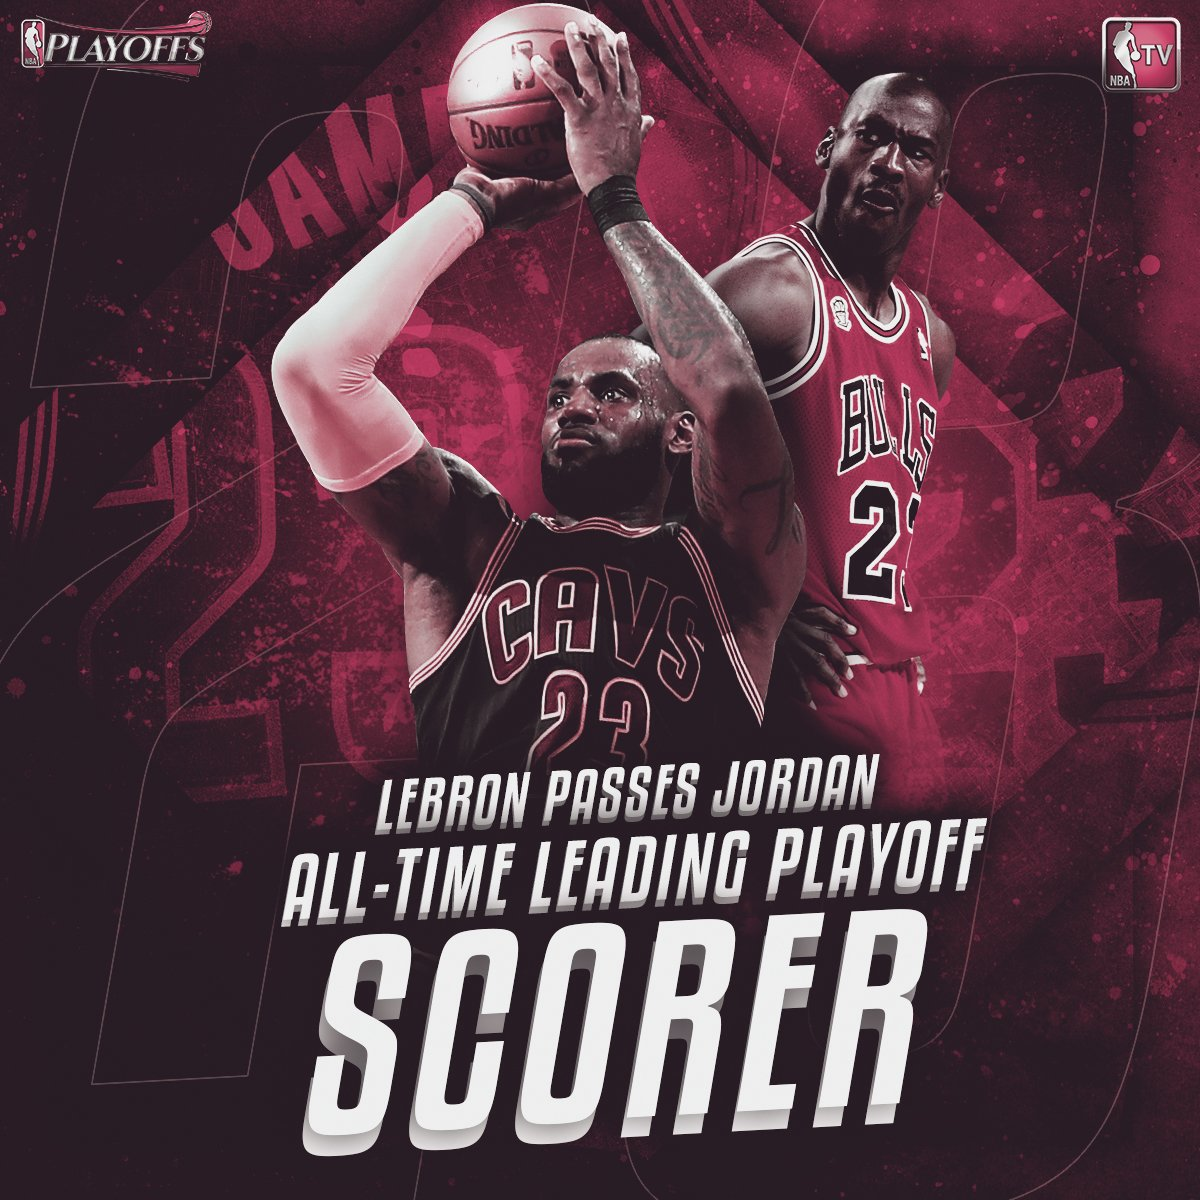 LeBron James moves past Michael Jordan to become the all-time #NBAPlayoffs leading scorer.